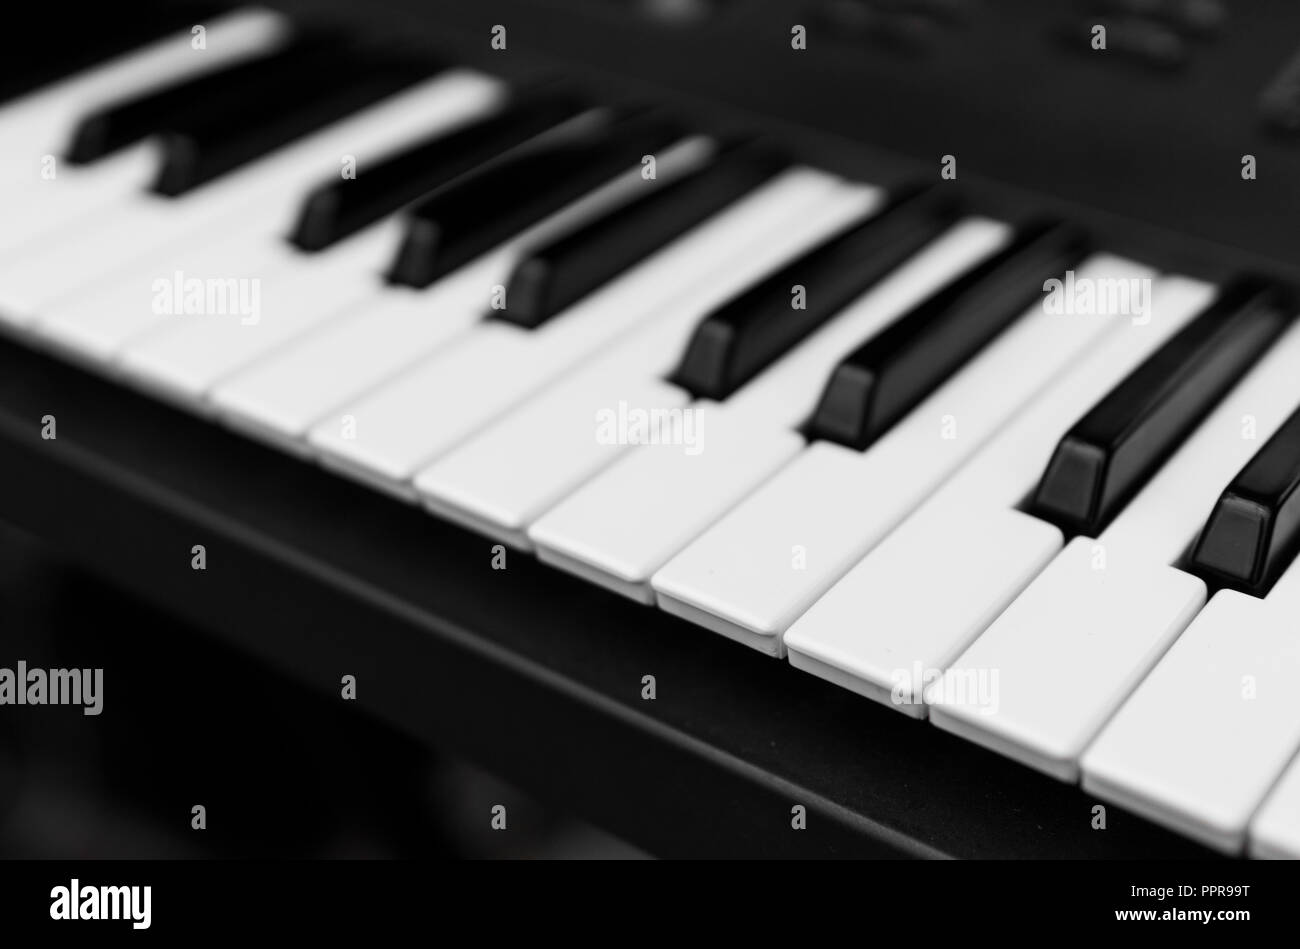 Synthesizer piano key board top view.Professional electronic midi keyboard with black and white keys. - Stock Image